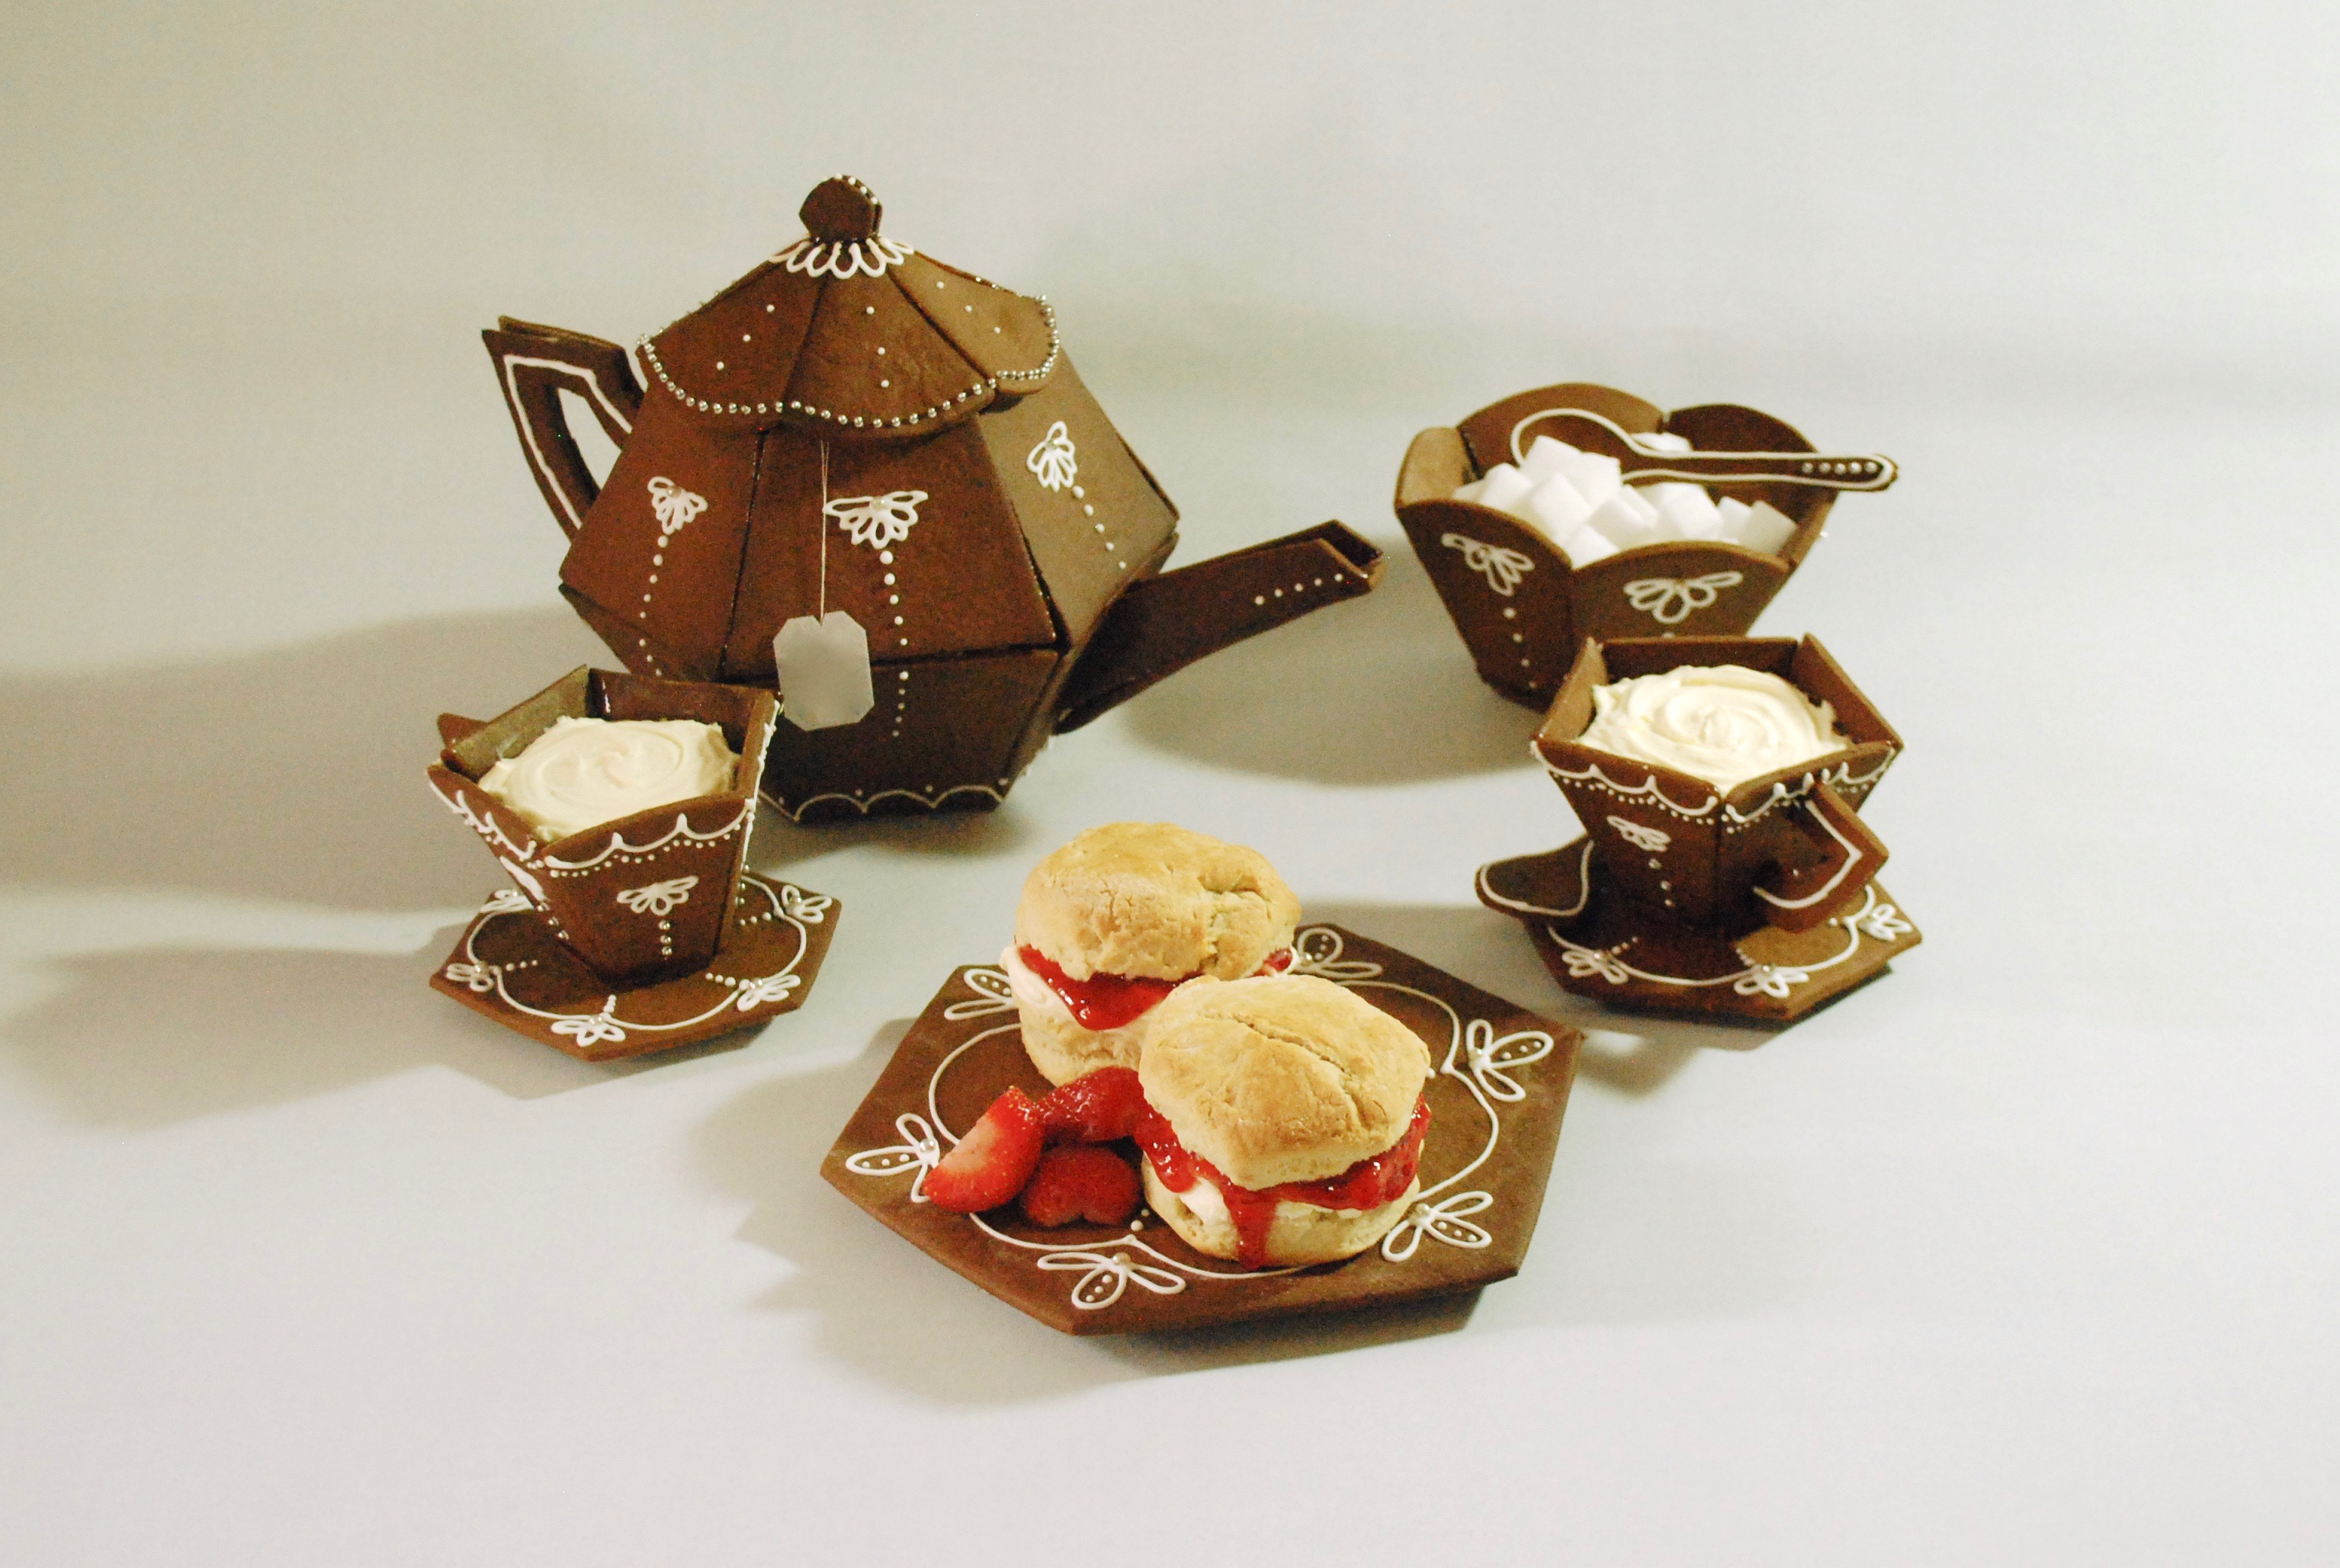 gingerbread tea set